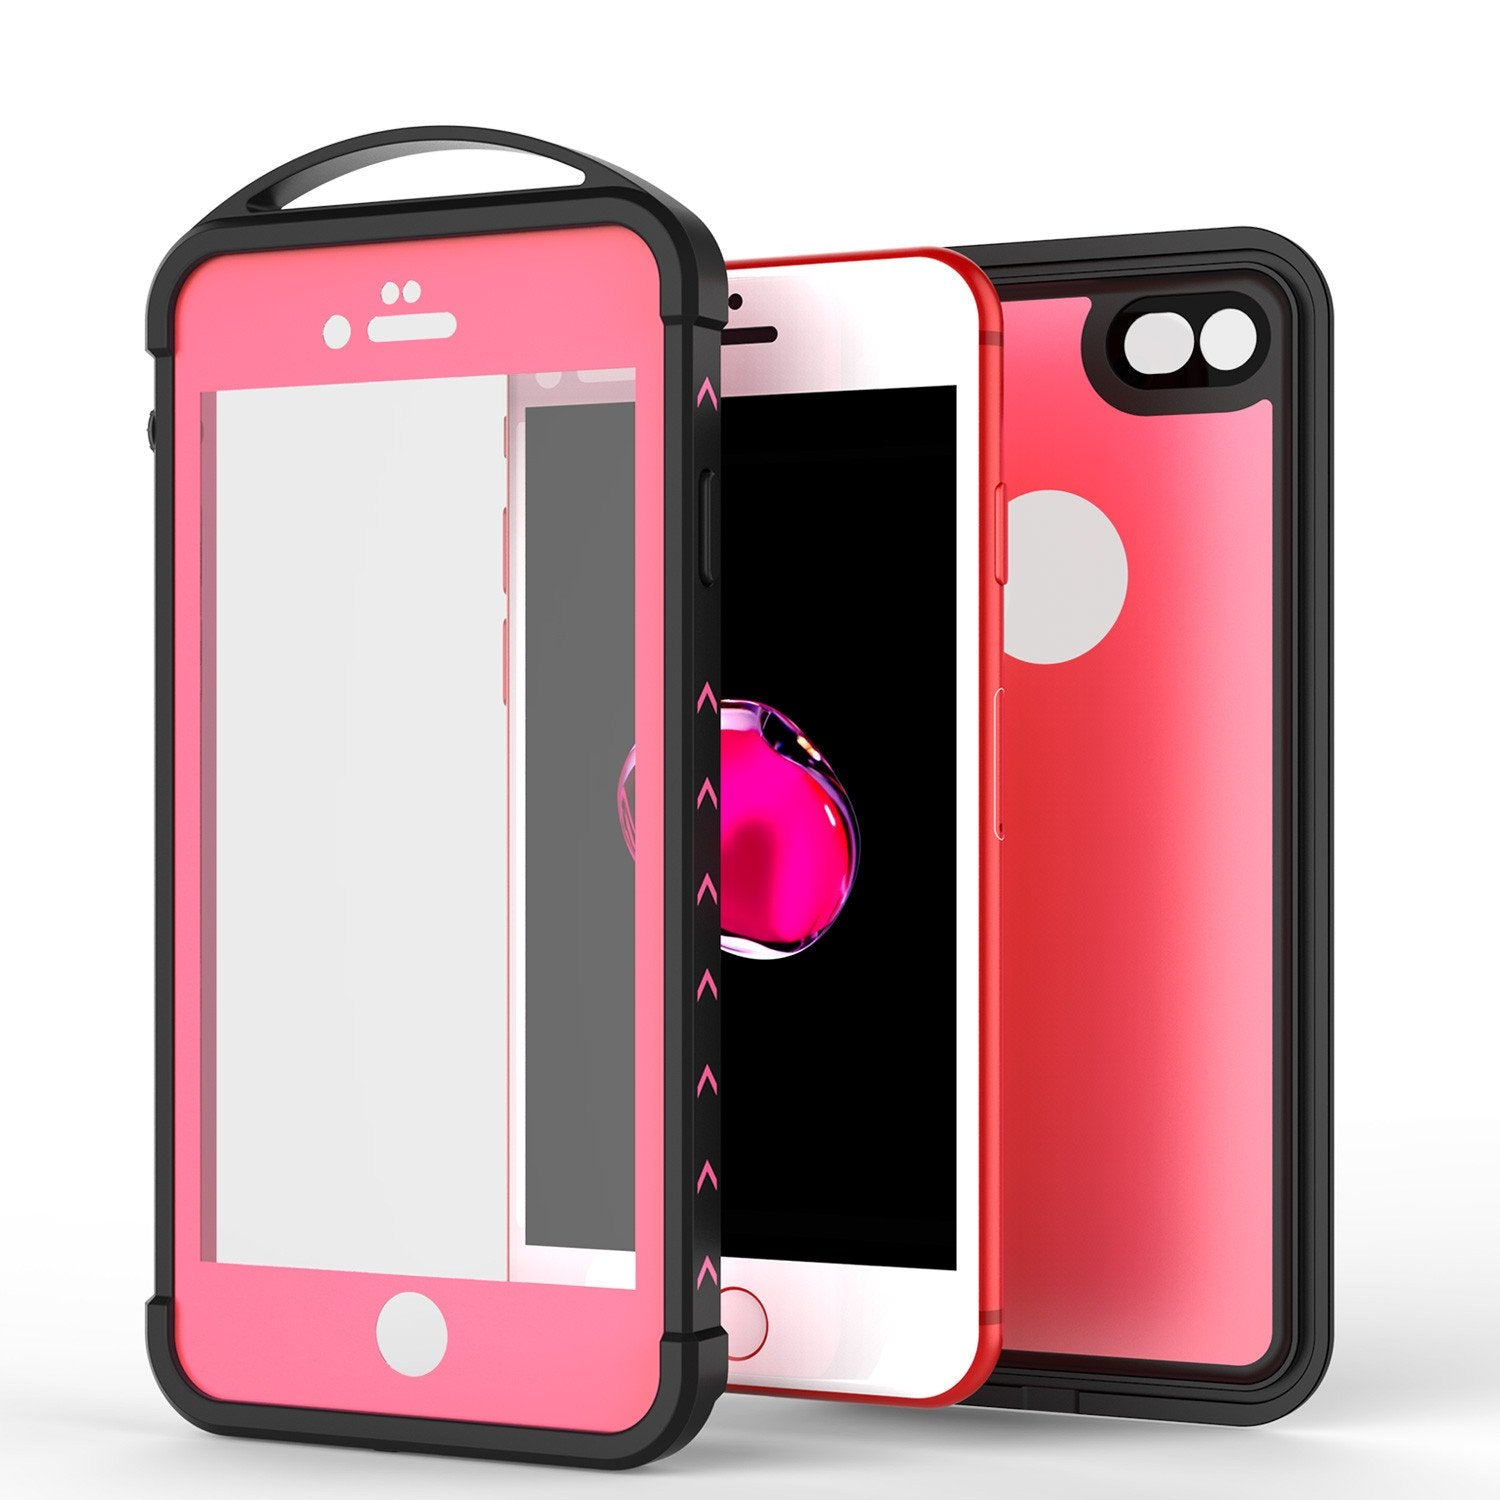 iPhone 7 Waterproof Case, Punkcase ALPINE Series, Pink | Heavy Duty Armor Cover